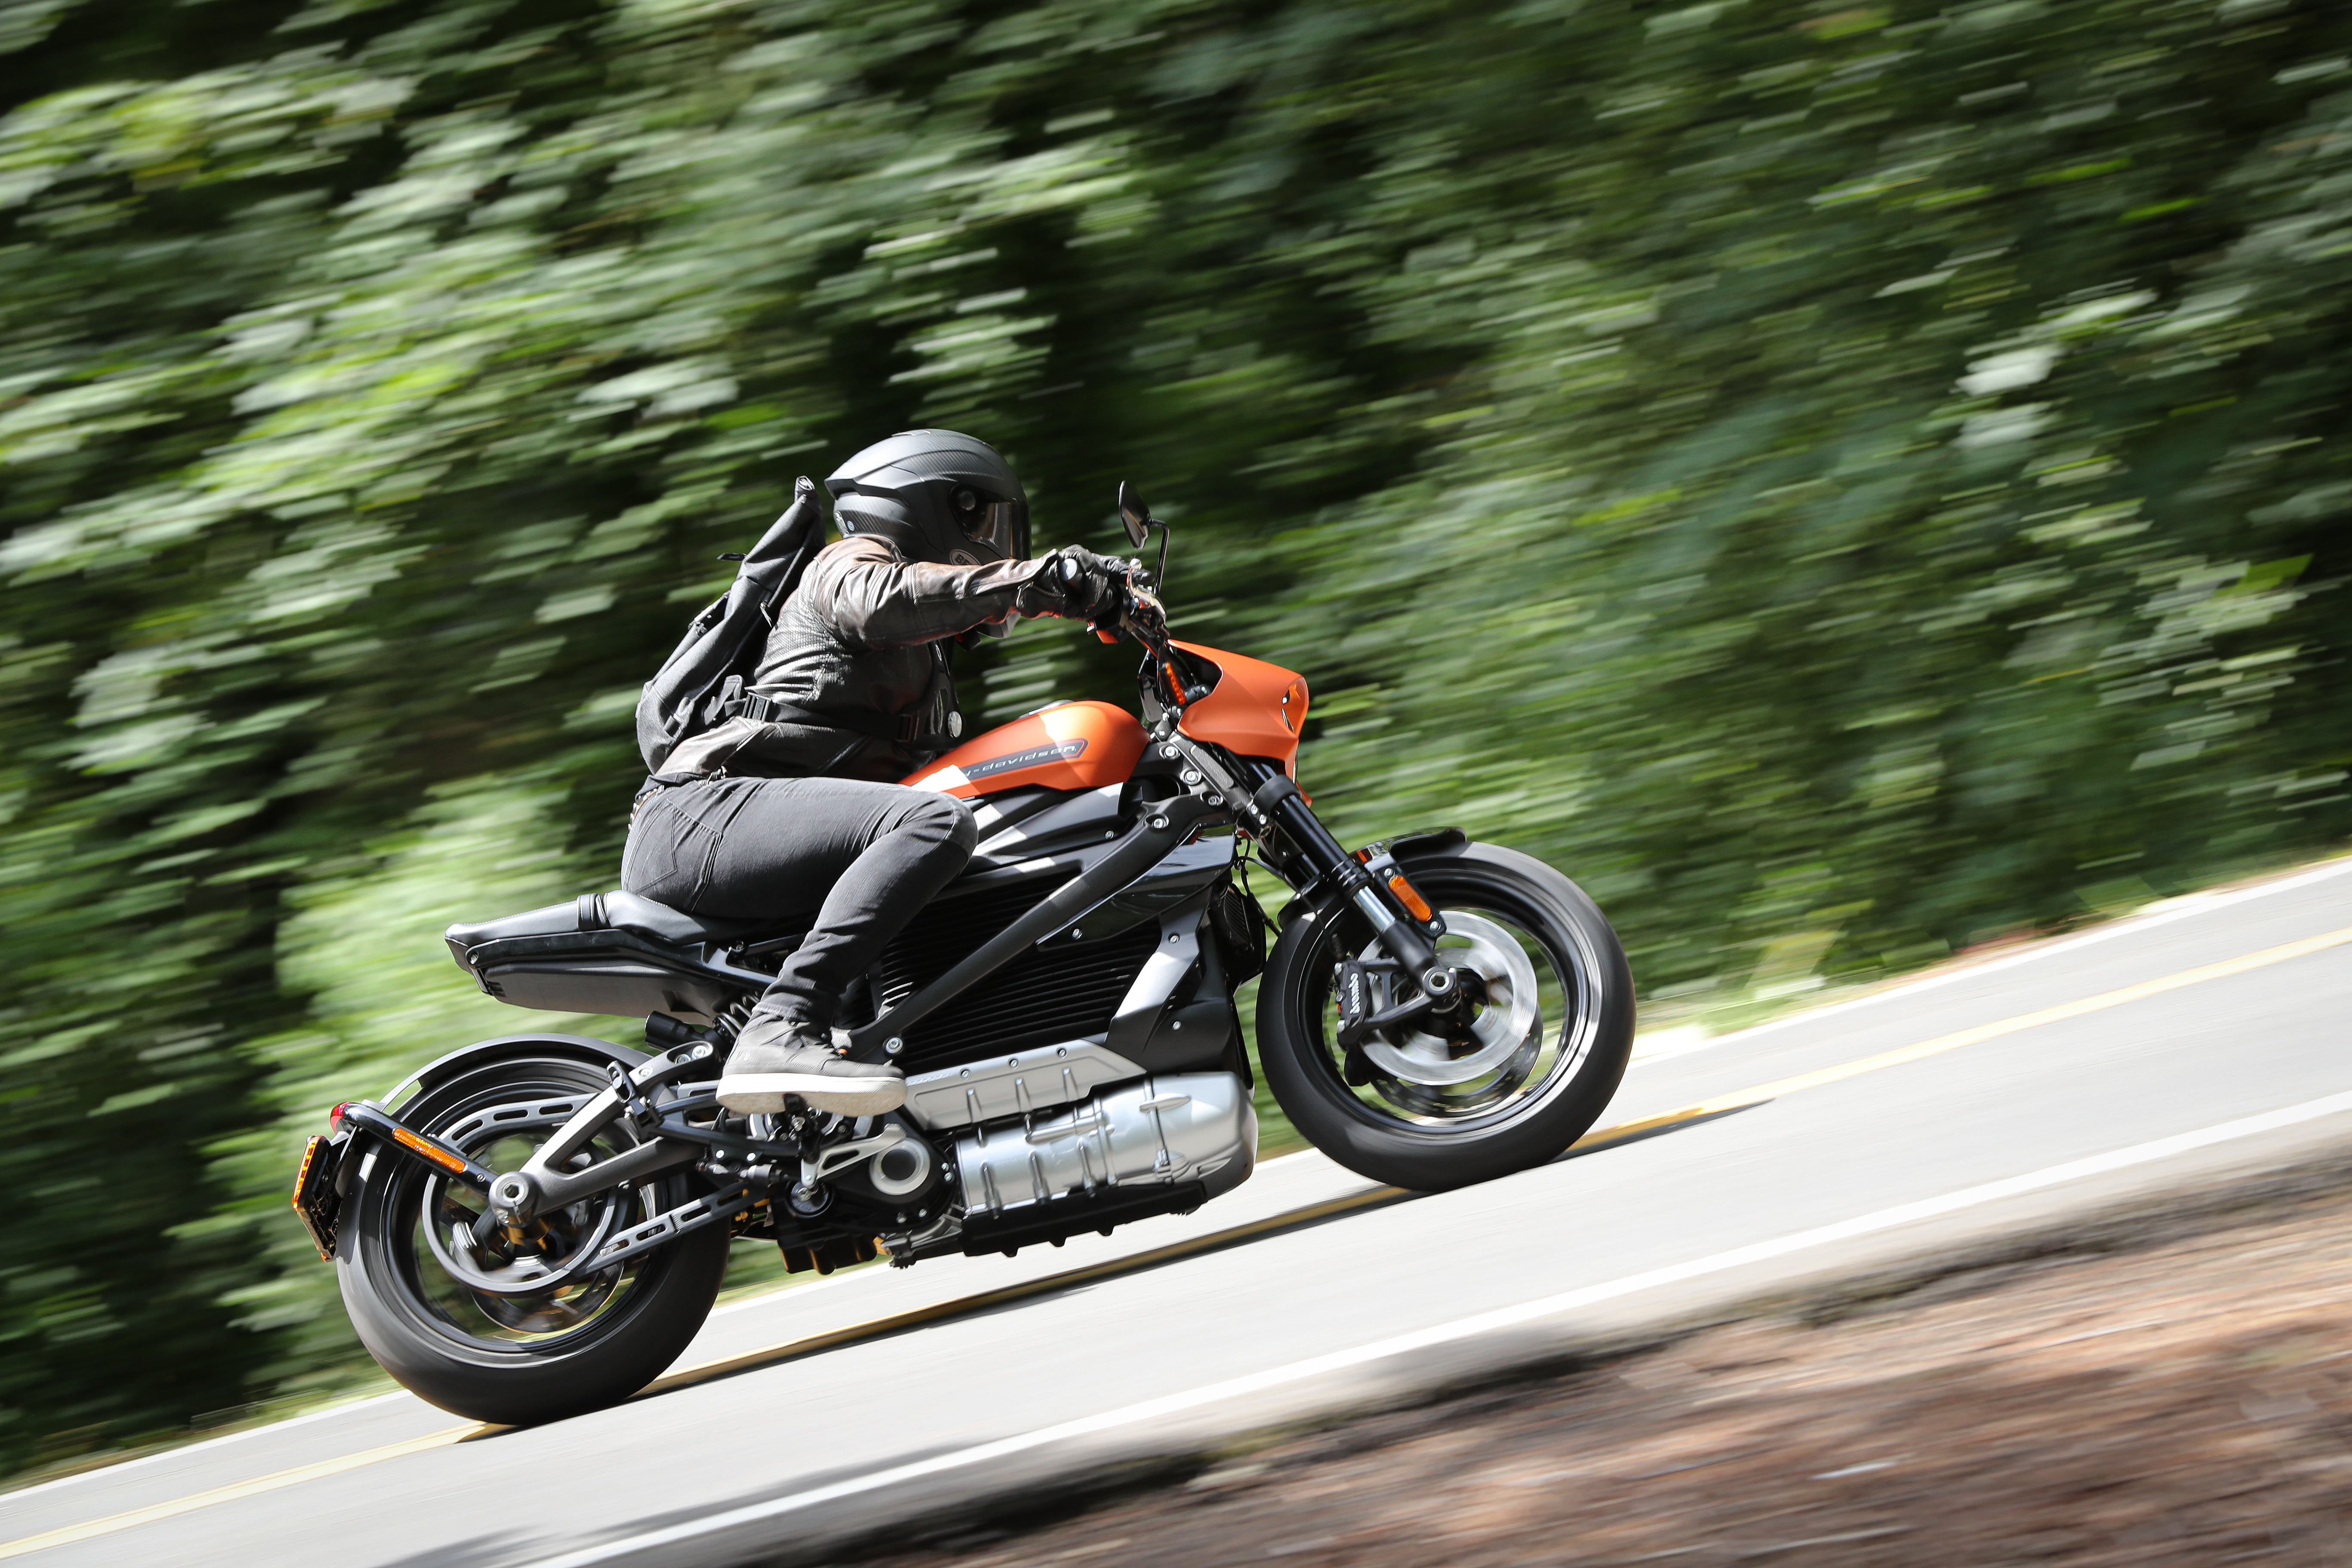 Review: Harley-Davidson's First Electric Motorcycle, the